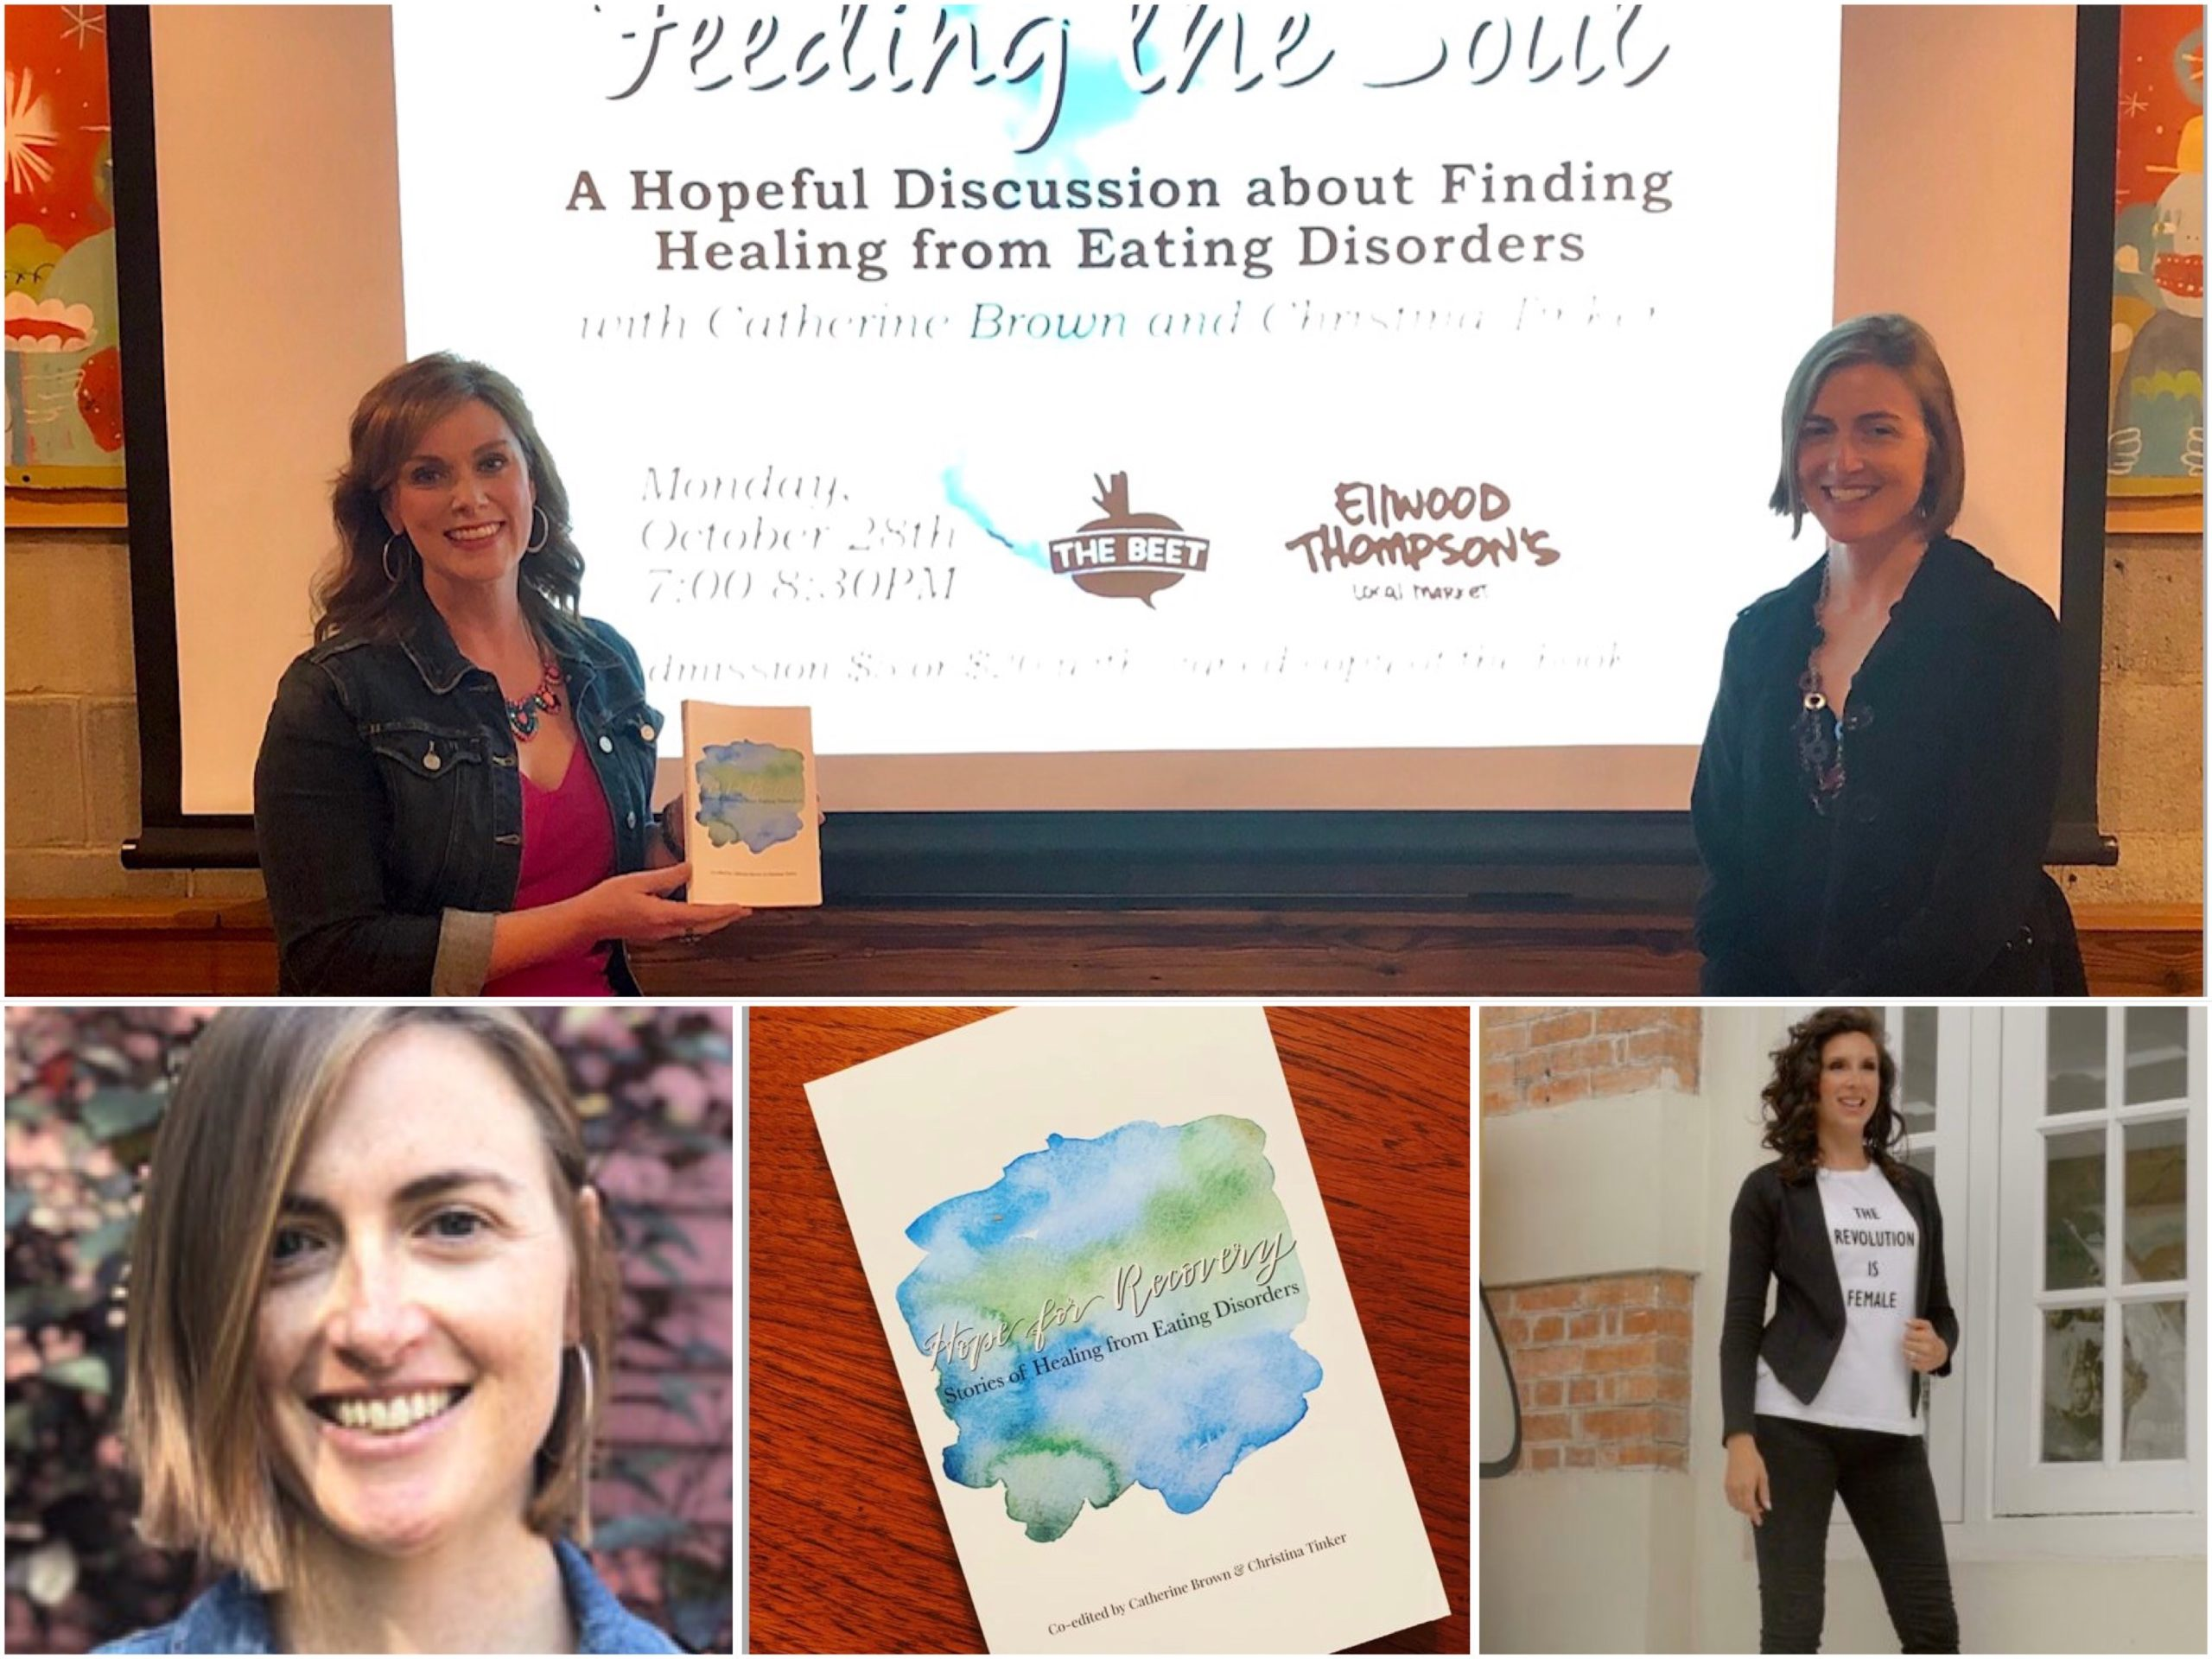 Conference Is Hosted By Eating Disorder Survivors, Features Eva DiVirgilis As Keynote Speaker